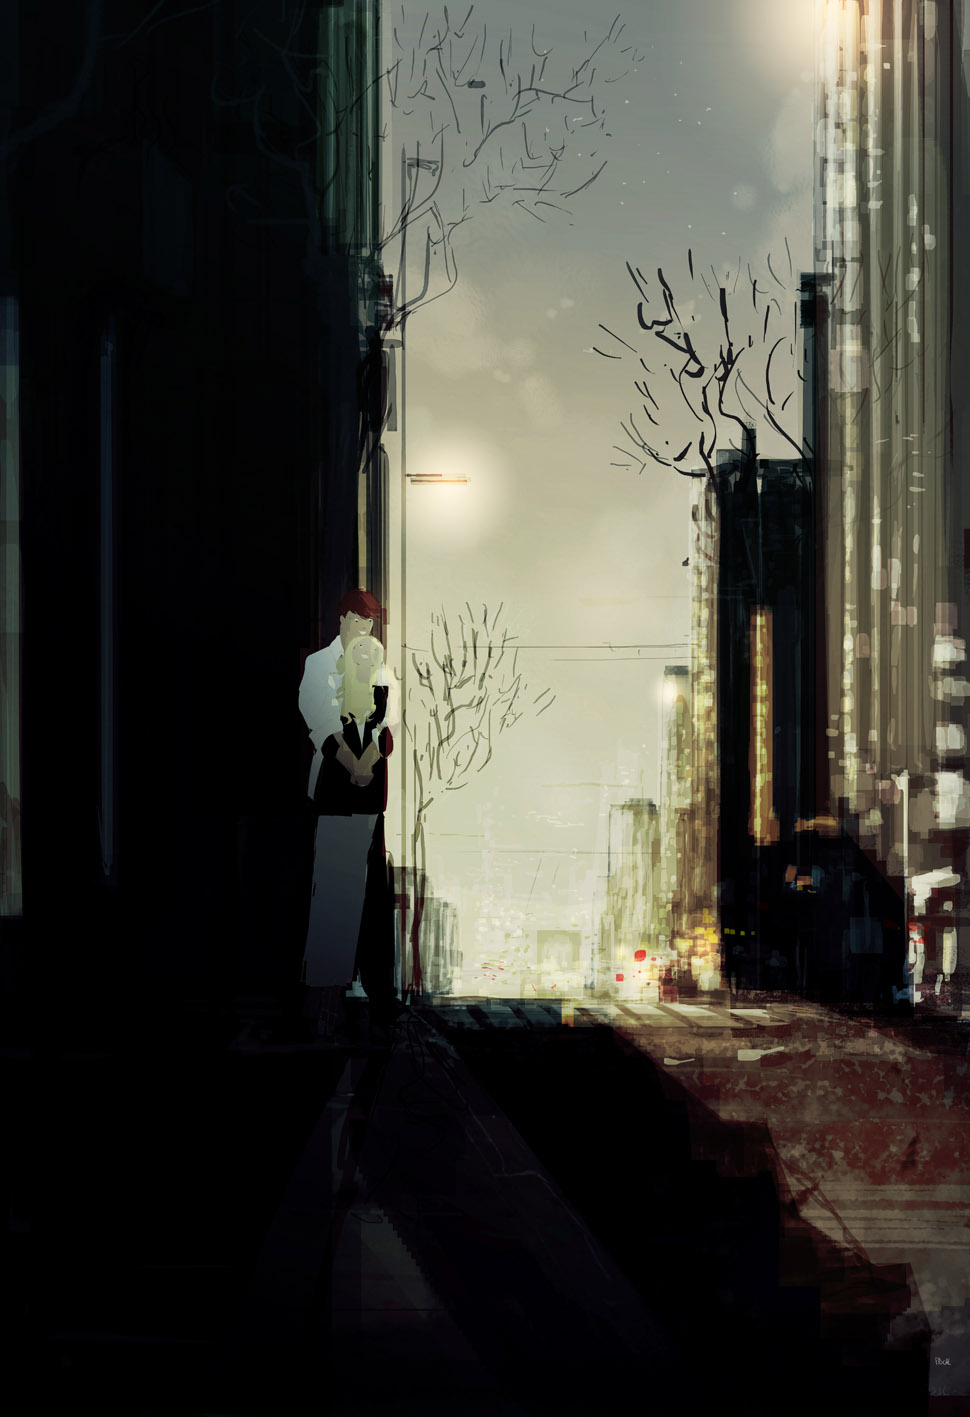 Till the break of day. by PascalCampion